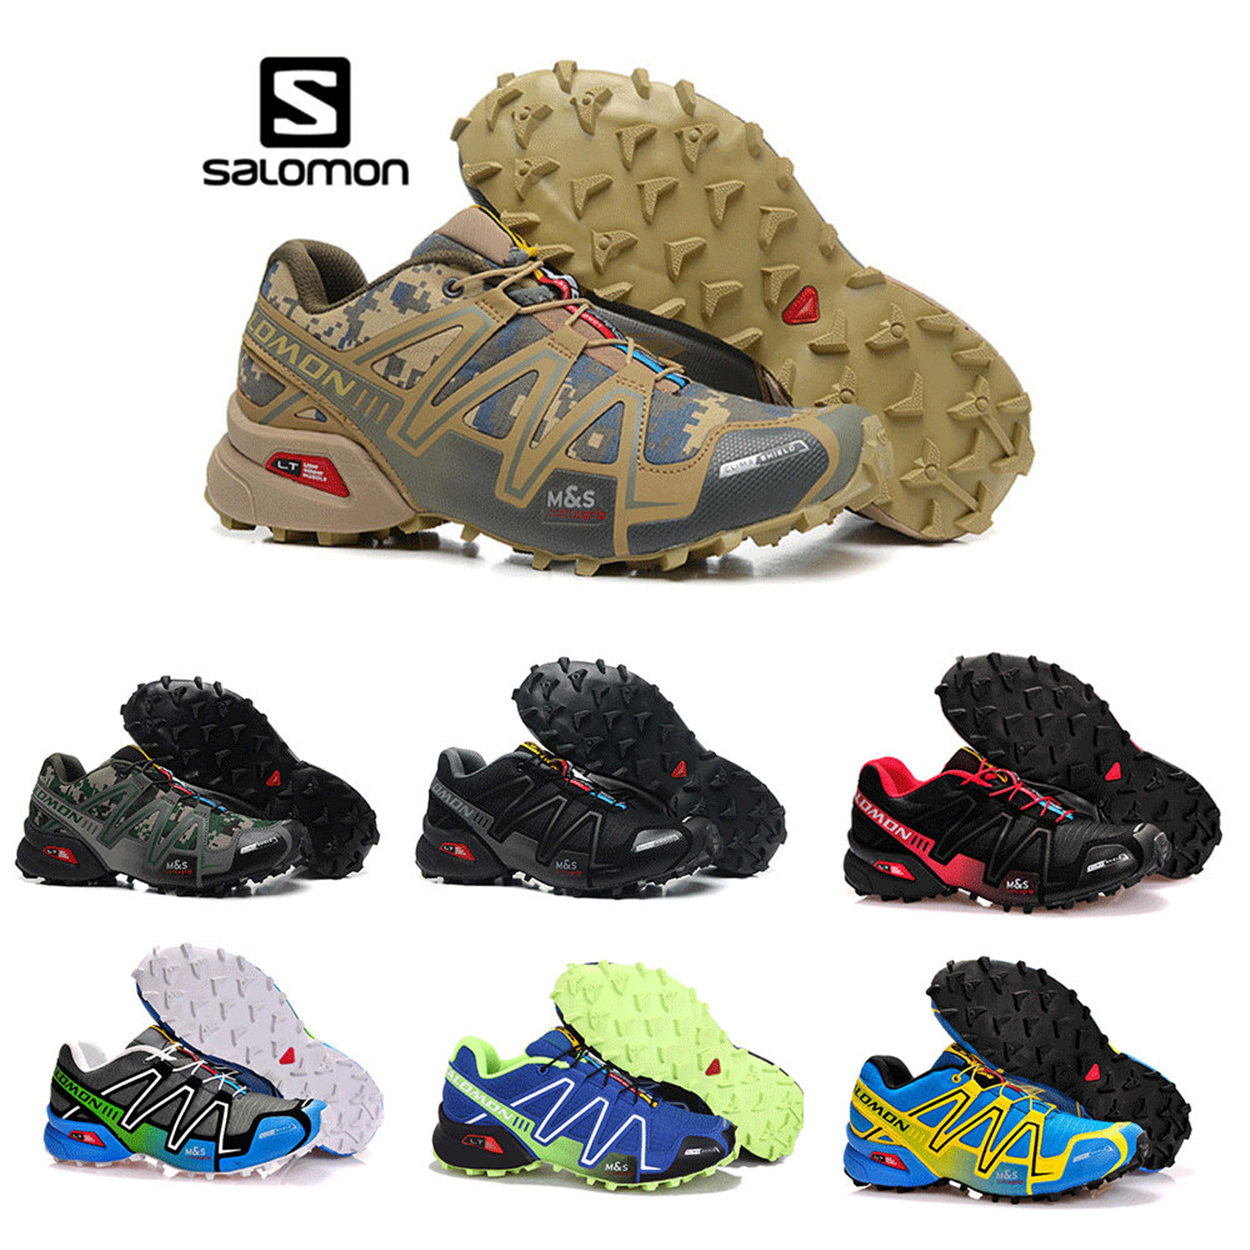 Salomon Speed Cross 3 CS cross running shoes Brand Sneakers Male Athletic Sport Shoes SPEED Fencing Shoes salomon speed cross 3 cs men shoes new man running shoes sports shoes sneakers outdoors mesh breathable wading walk couple athl